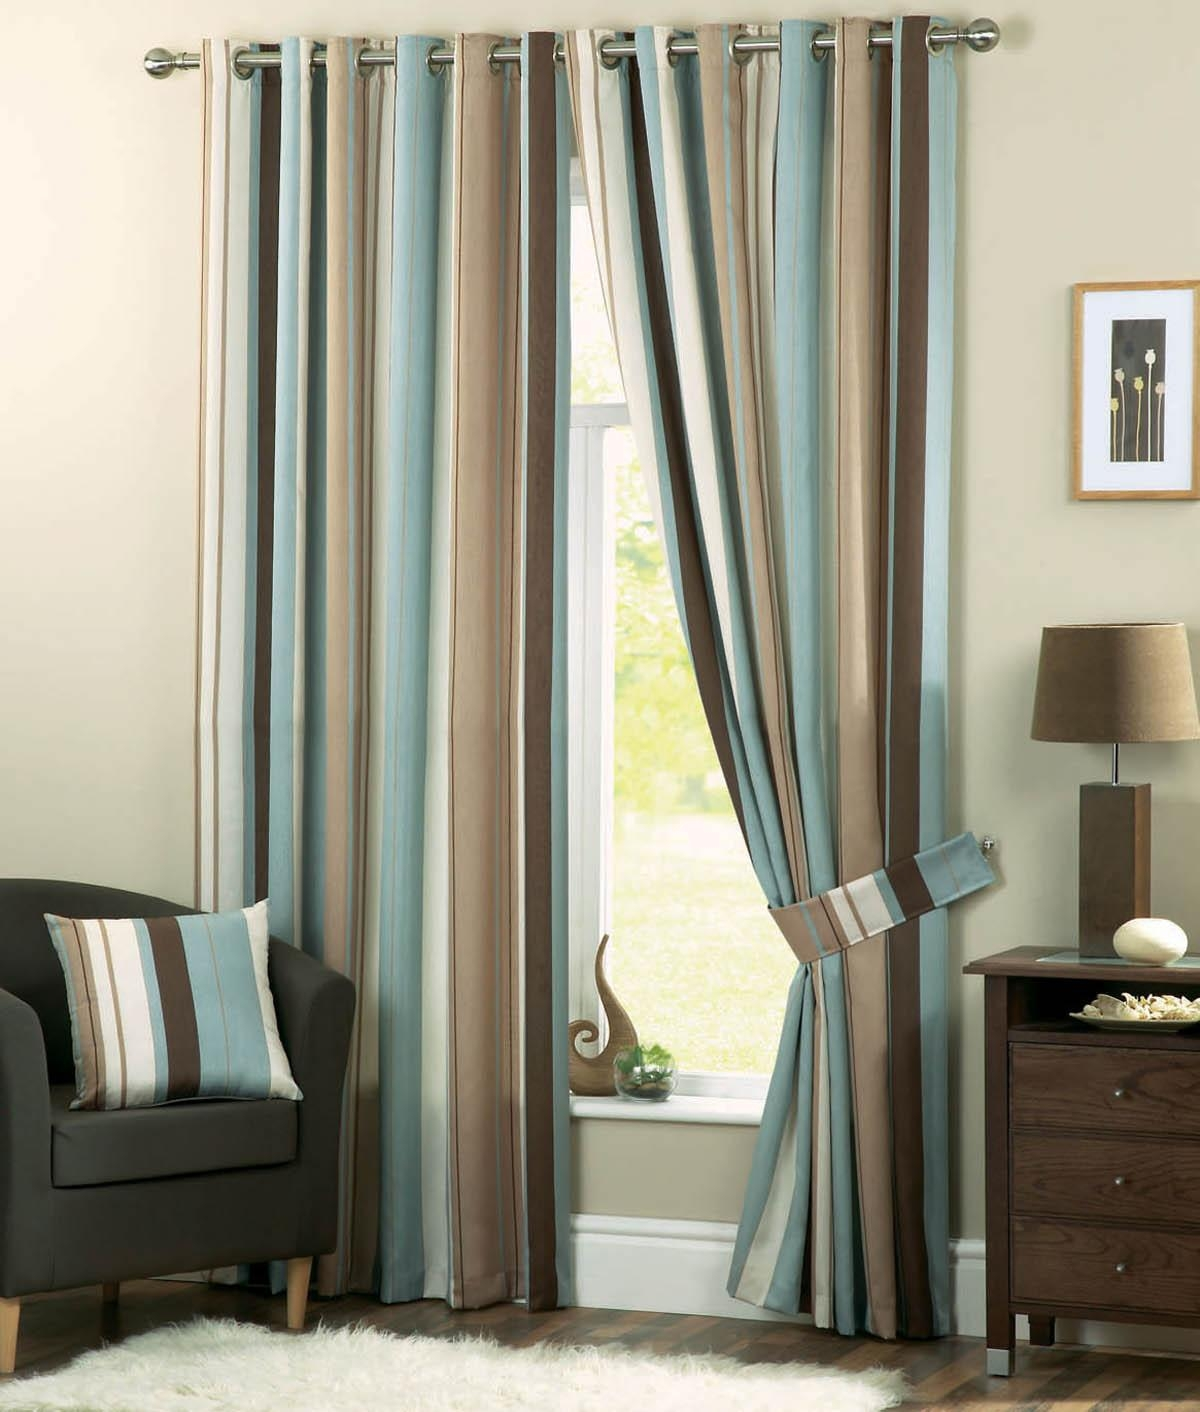 Whitworth Eyelet Curtains Duckegg Free Uk Delivery Terrys Fabrics Within Duck Egg Blue Striped Curtains (Image 15 of 15)